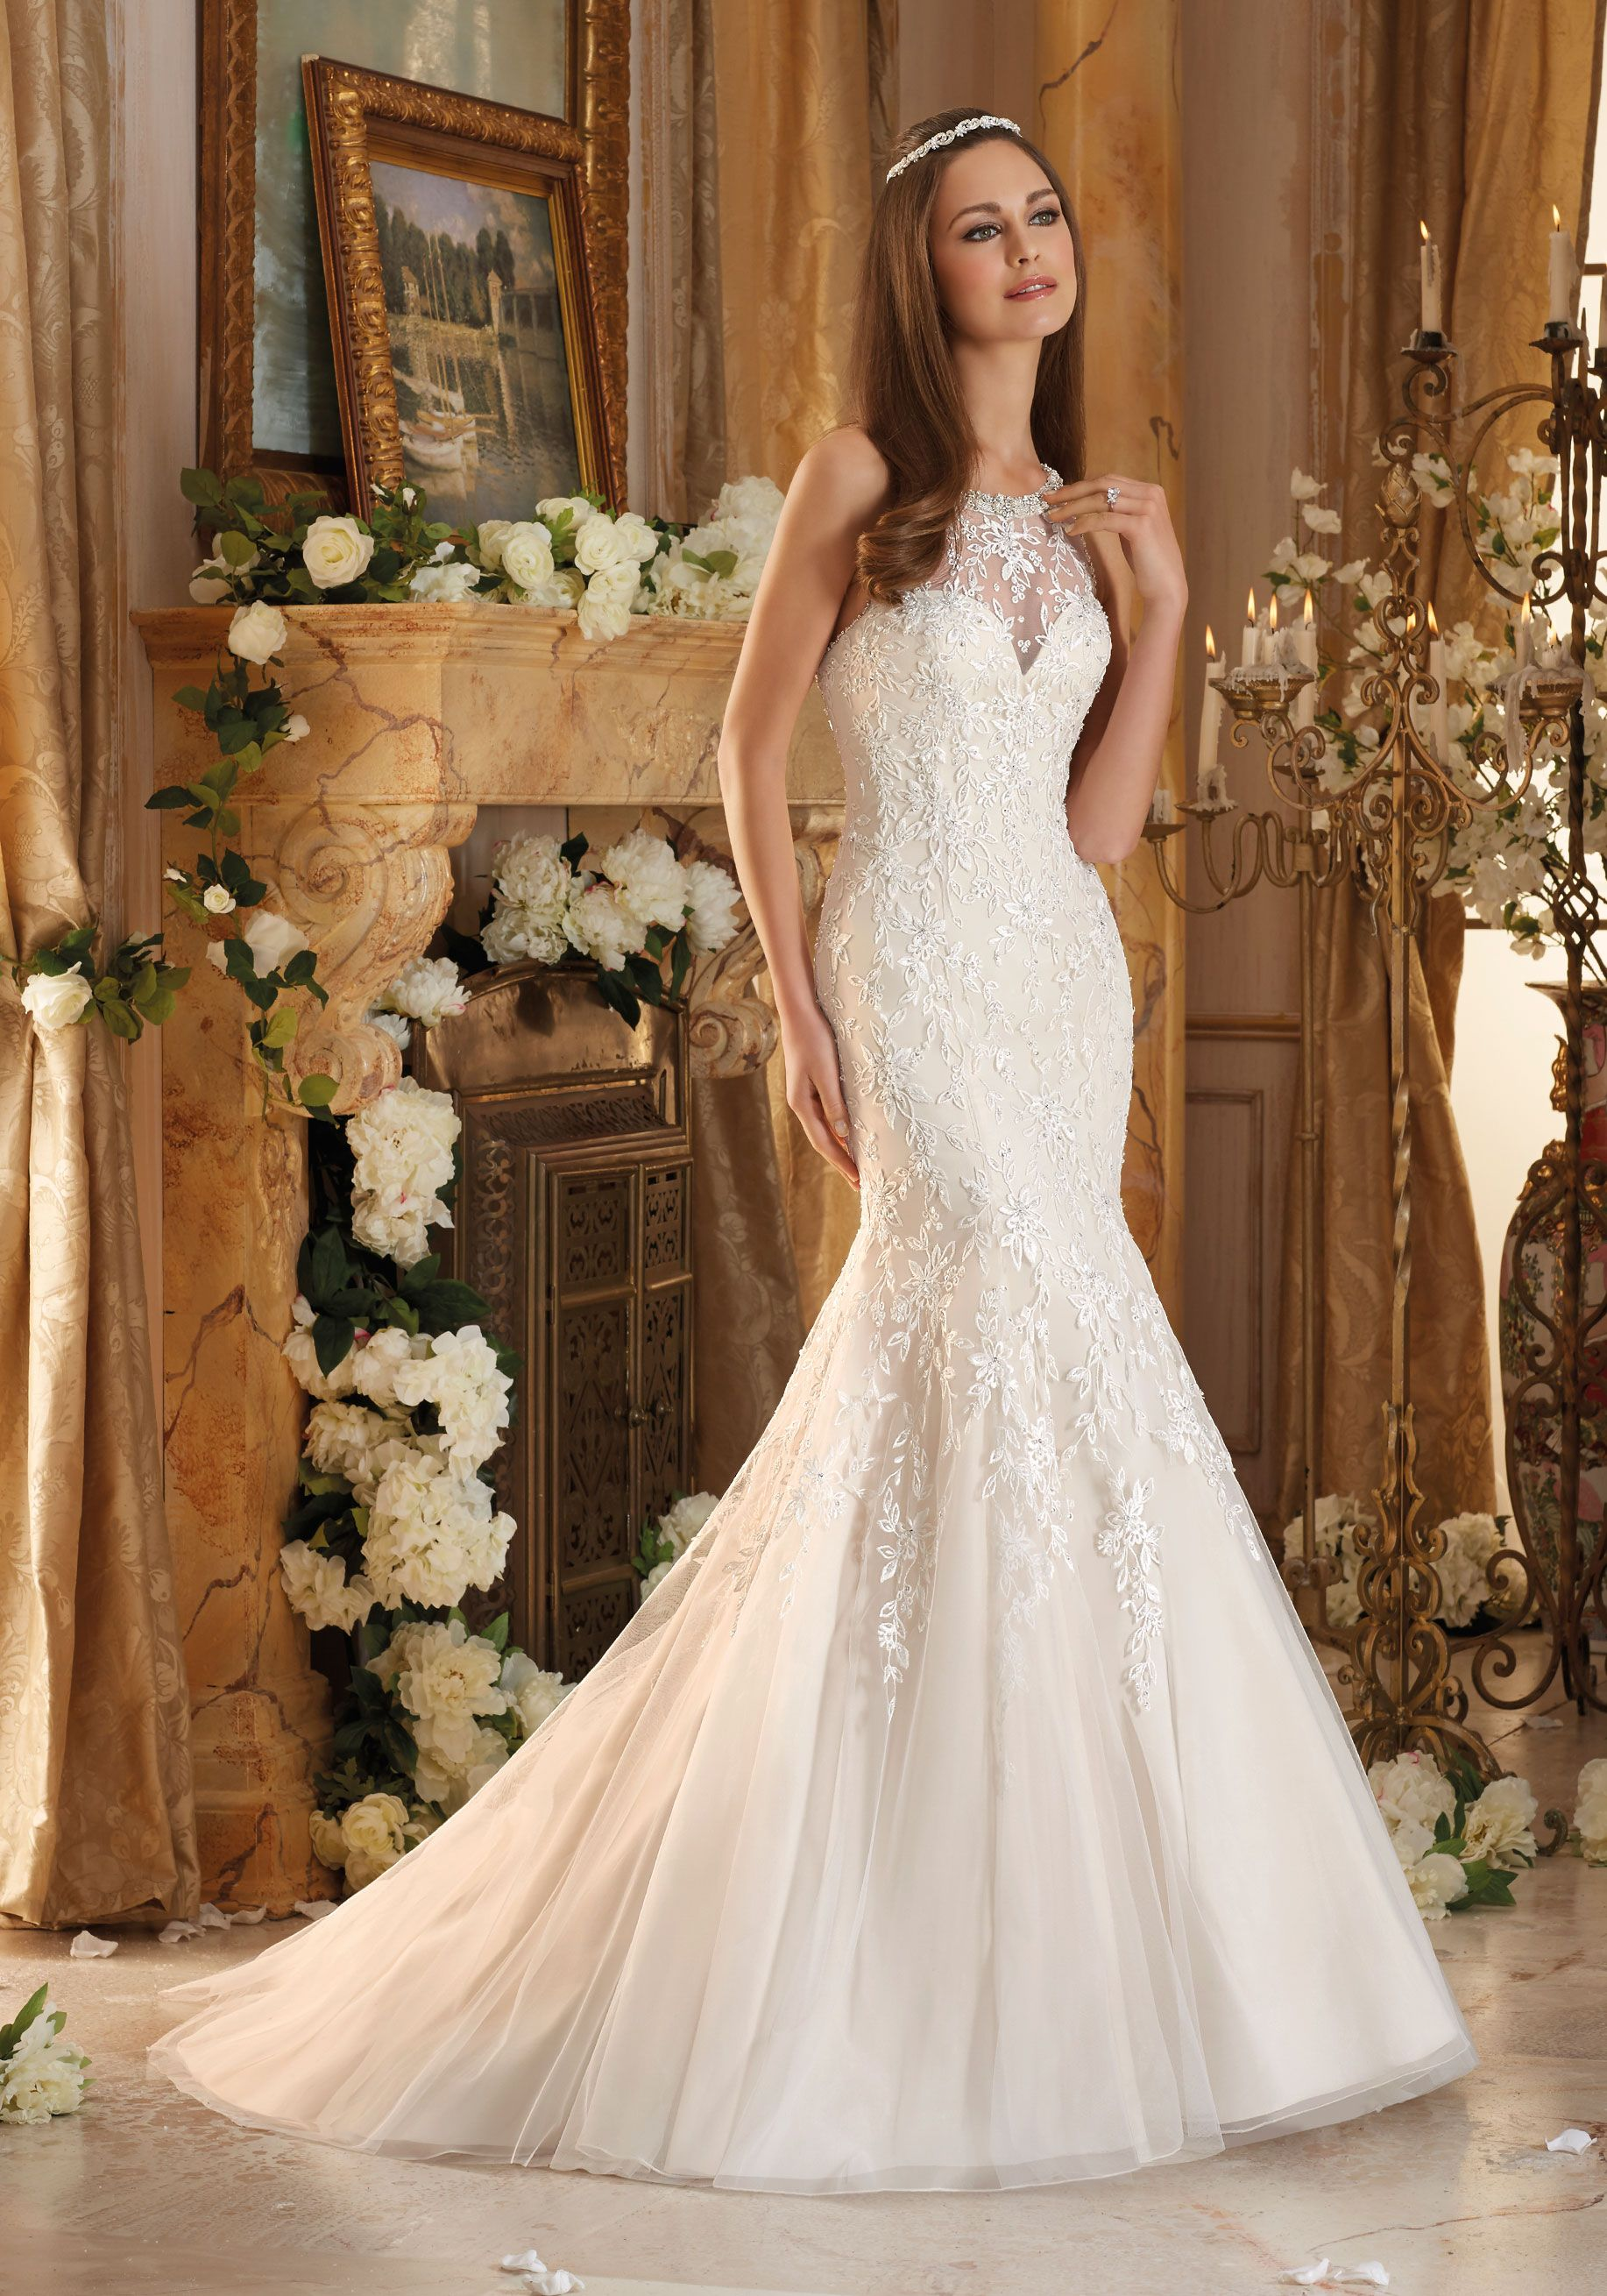 Embroidery On Soft Tulle With Pearls And Crystals Morilee Wedding Dress Styles Mori Lee Wedding Dress Designer Bridal Gowns